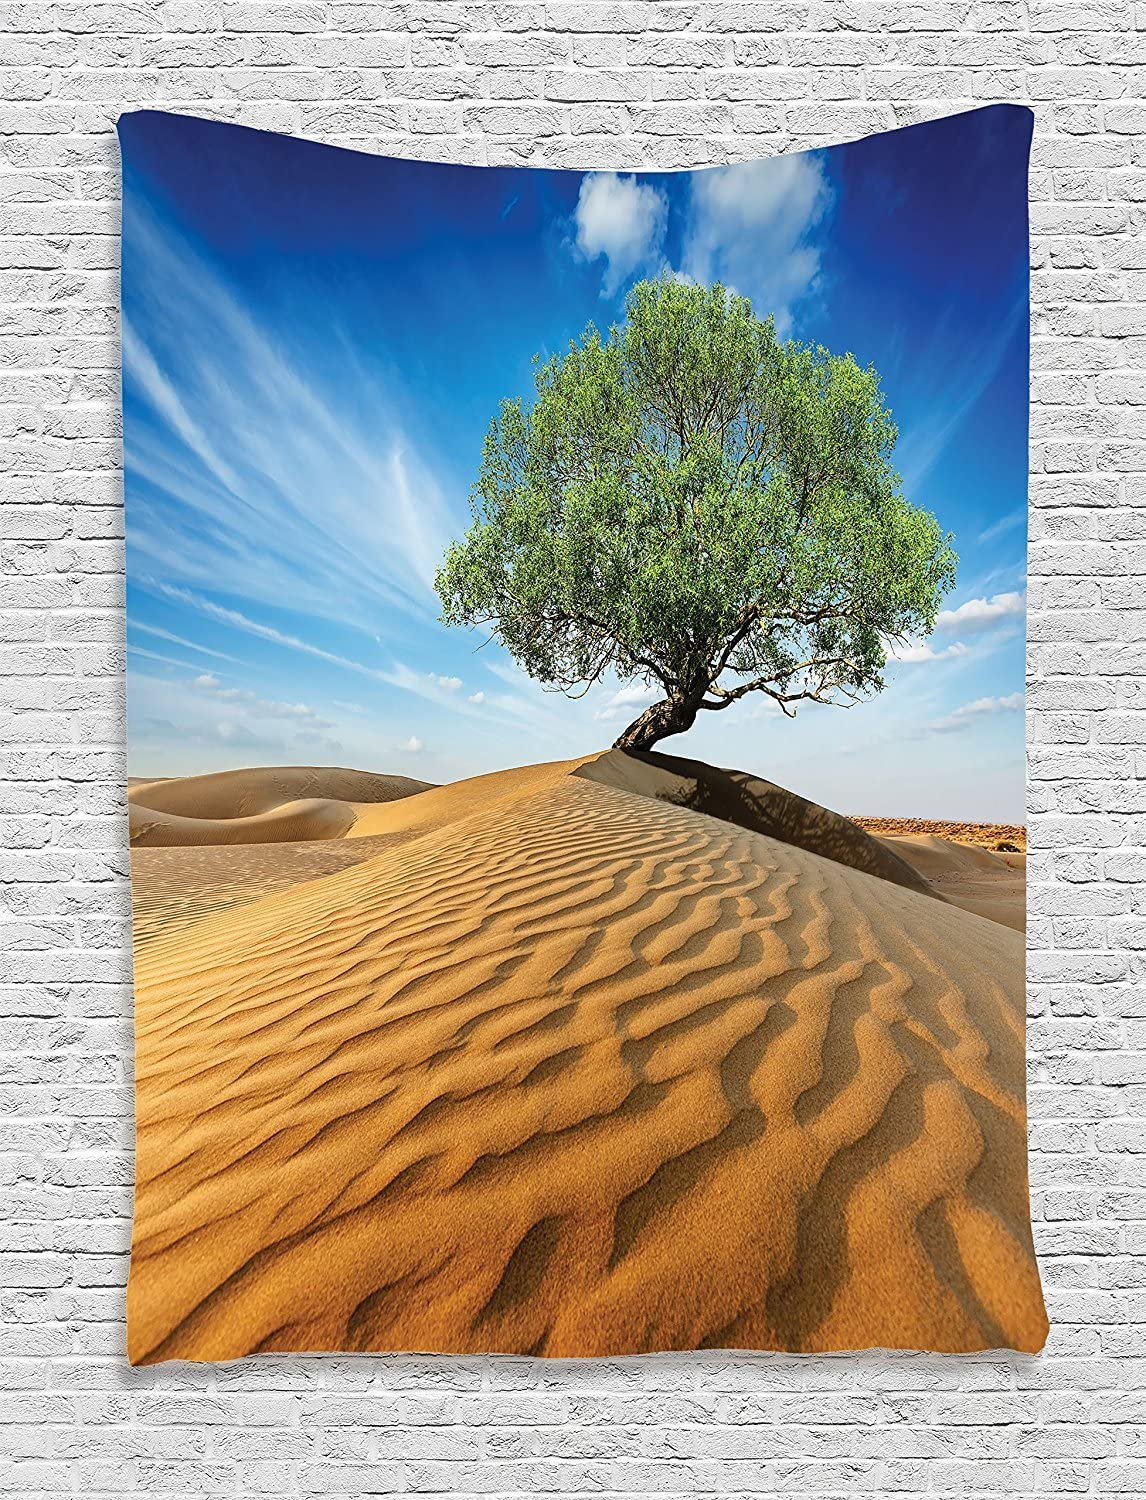 JAKE SAWYERS Tree Life Decor Collection, Lonely Tree in The Desert Dunes Over Sand Dramatic Dry But Alive Nature Photo, Bedroom Living Room Dorm Wall Hanging Tapestry, Blue Cream Green